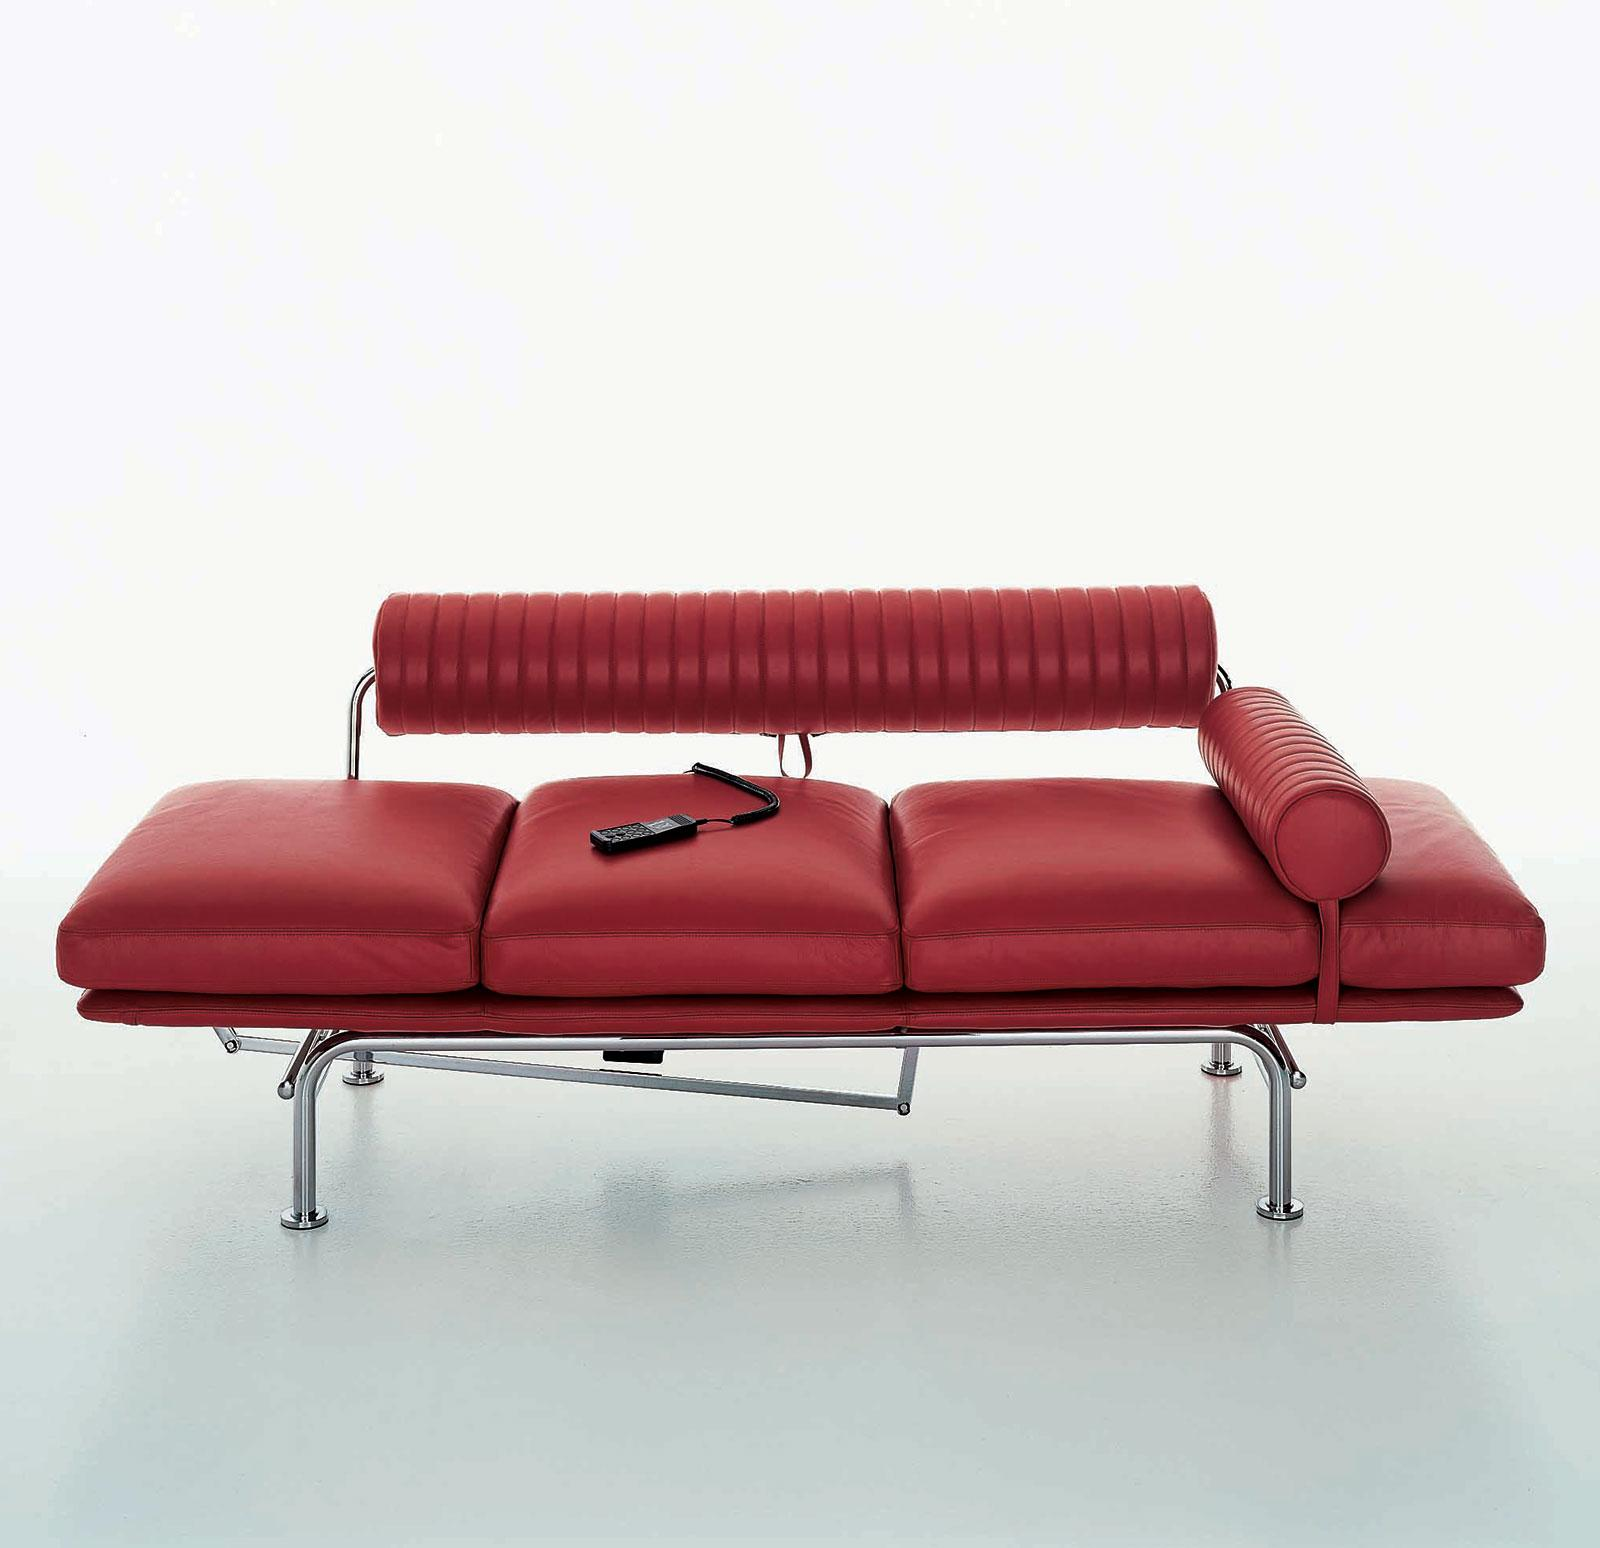 Up down powered sofa leather lounge chaise shop online - Sofa rinconera con chaise longue ...